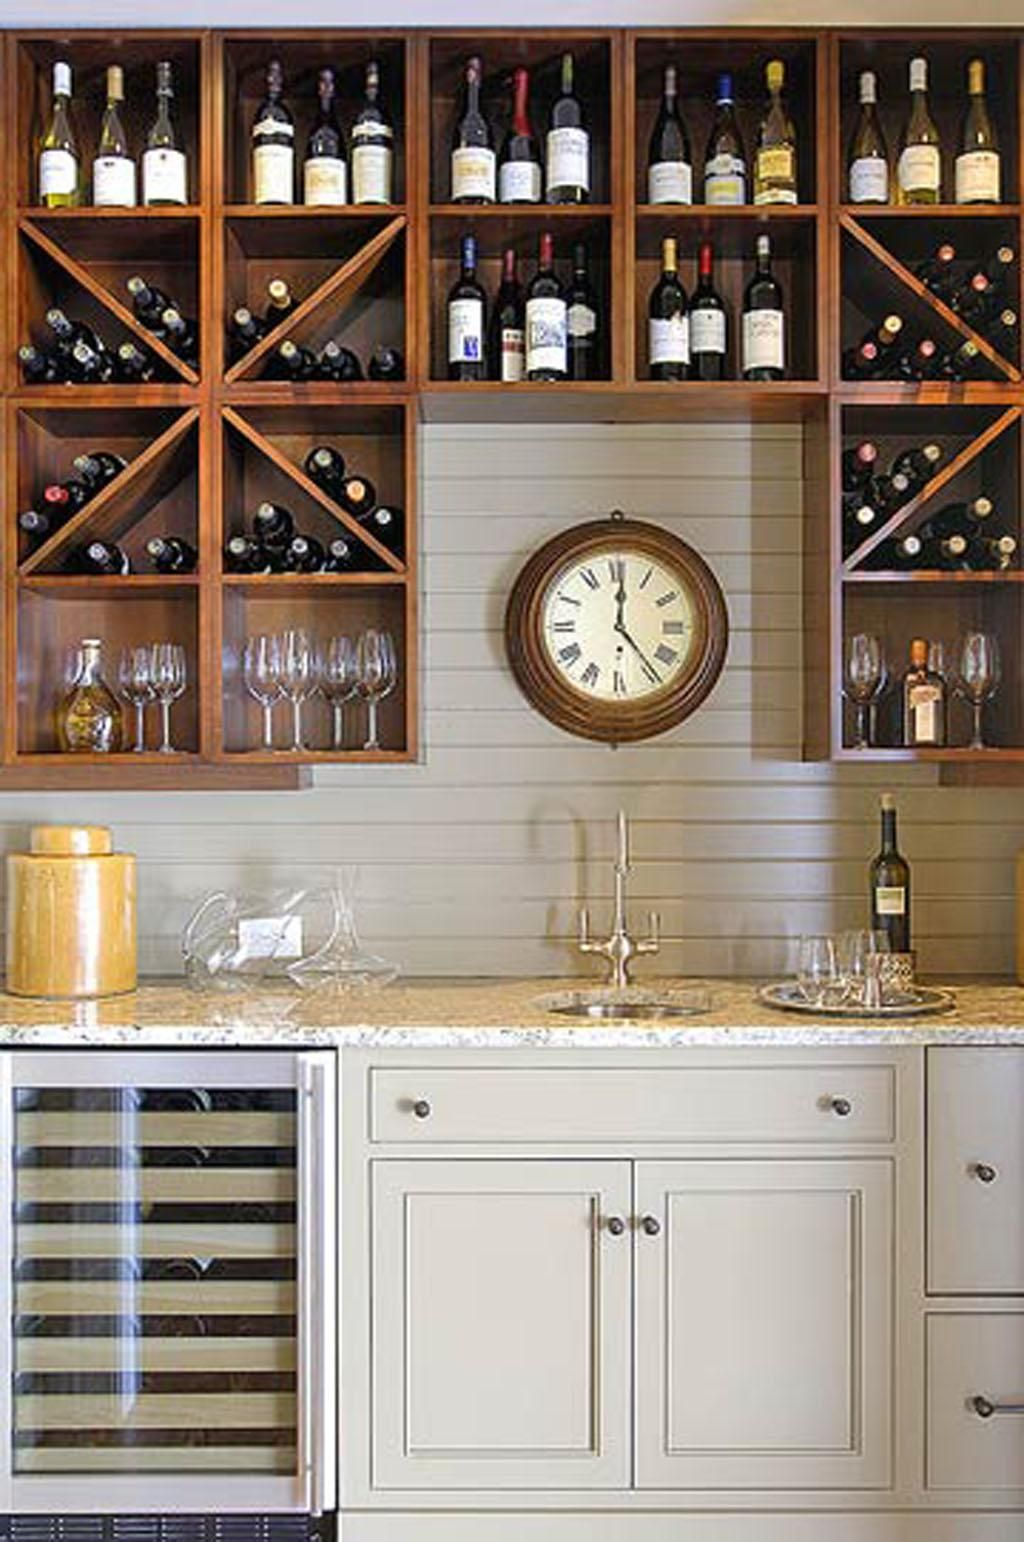 wine bar decorating ideas home wet bar wine storage wine bar. beautiful ideas. Home Design Ideas